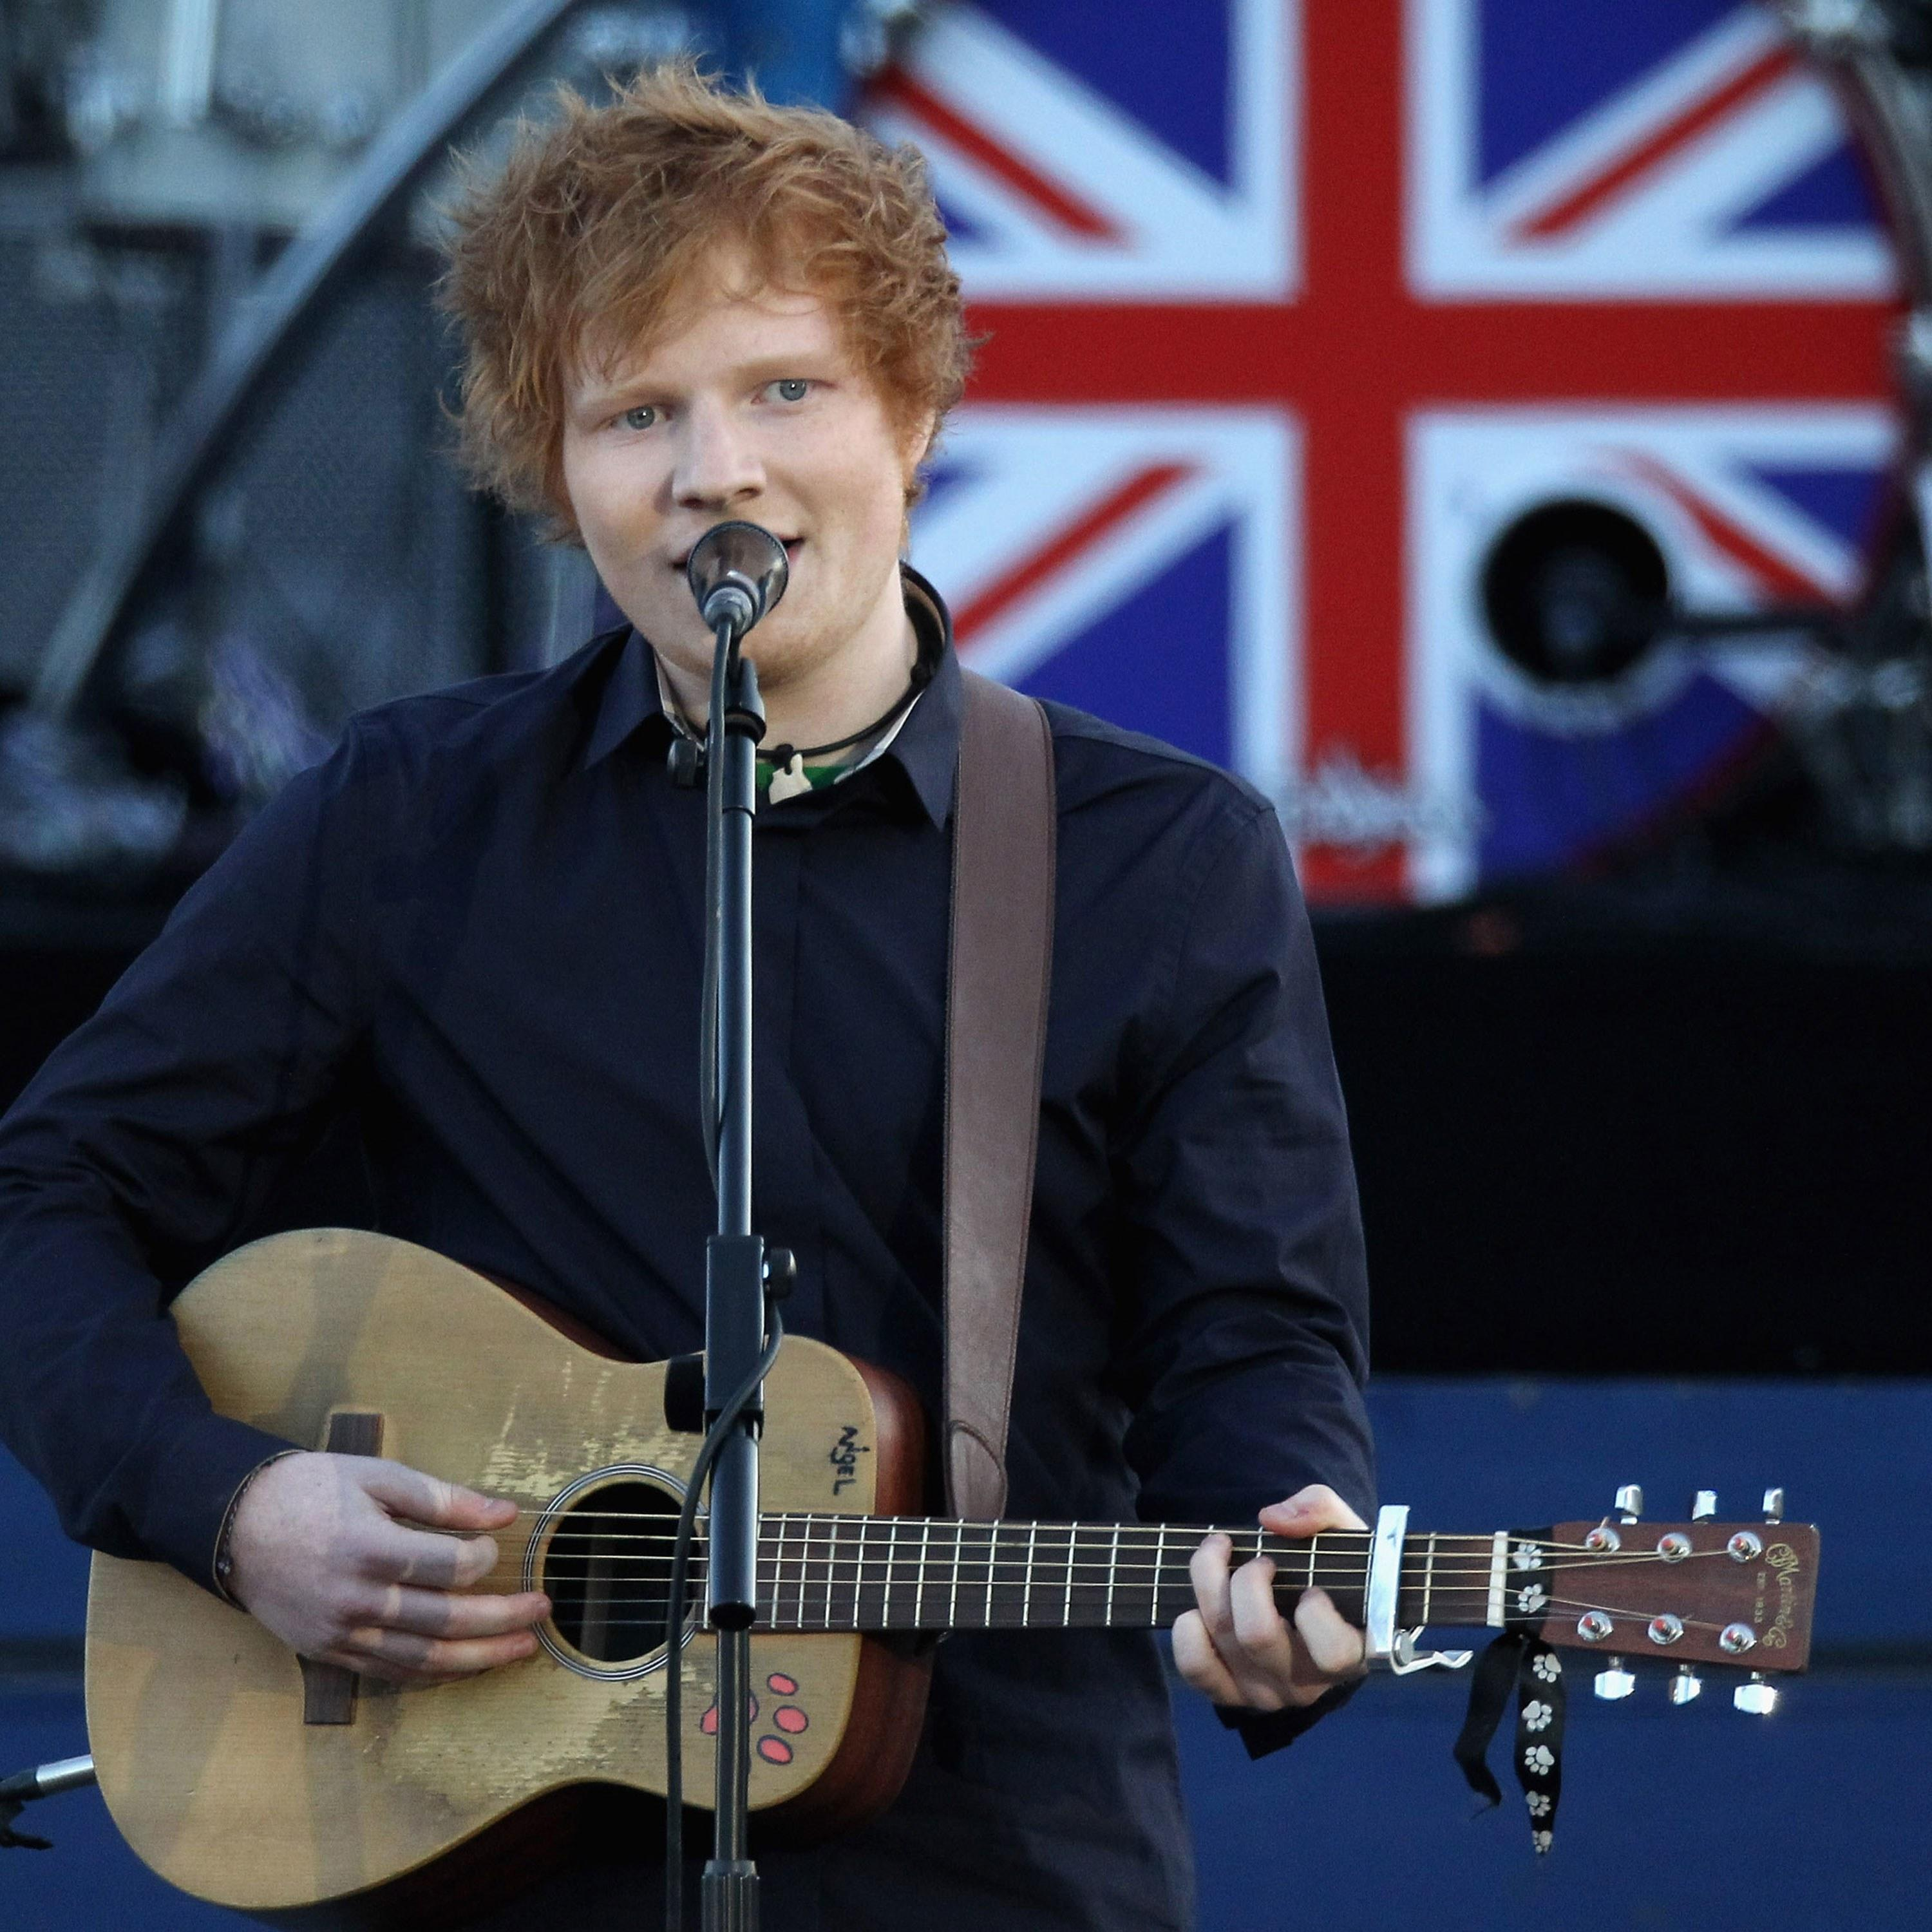 Will The Spice Girls Or Ed Sheeran Play At Prince Harry